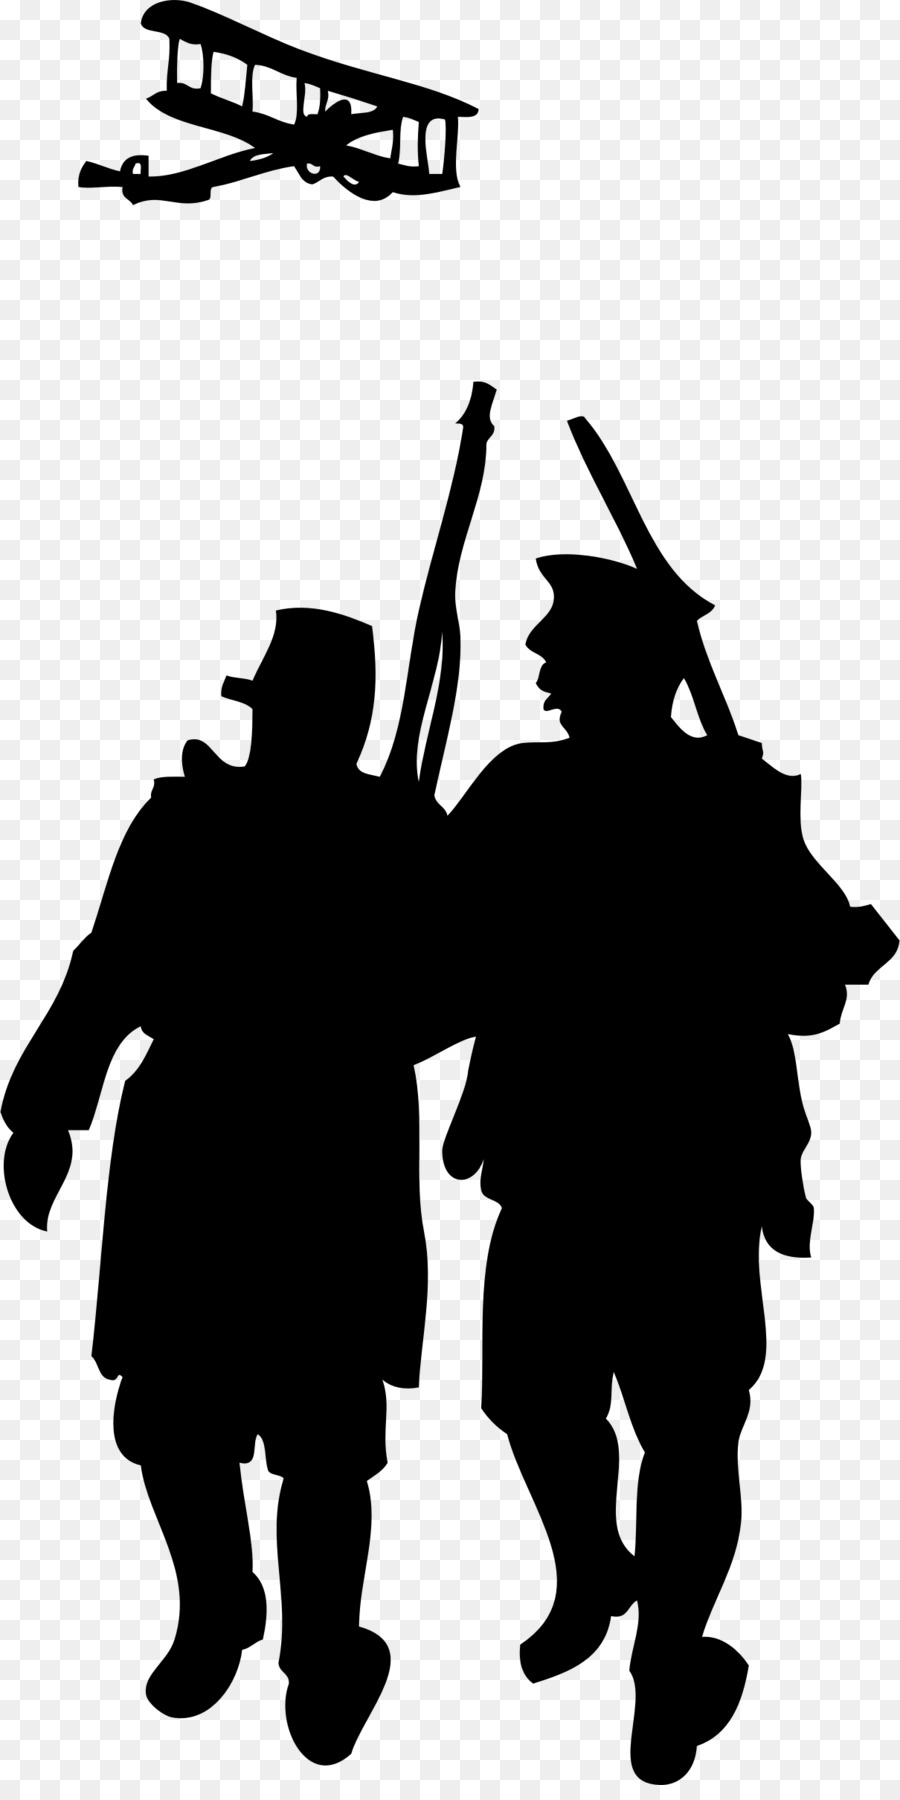 ww1 soldier silhouette userborderman the lonsdale battalion ww1 silhouette soldier